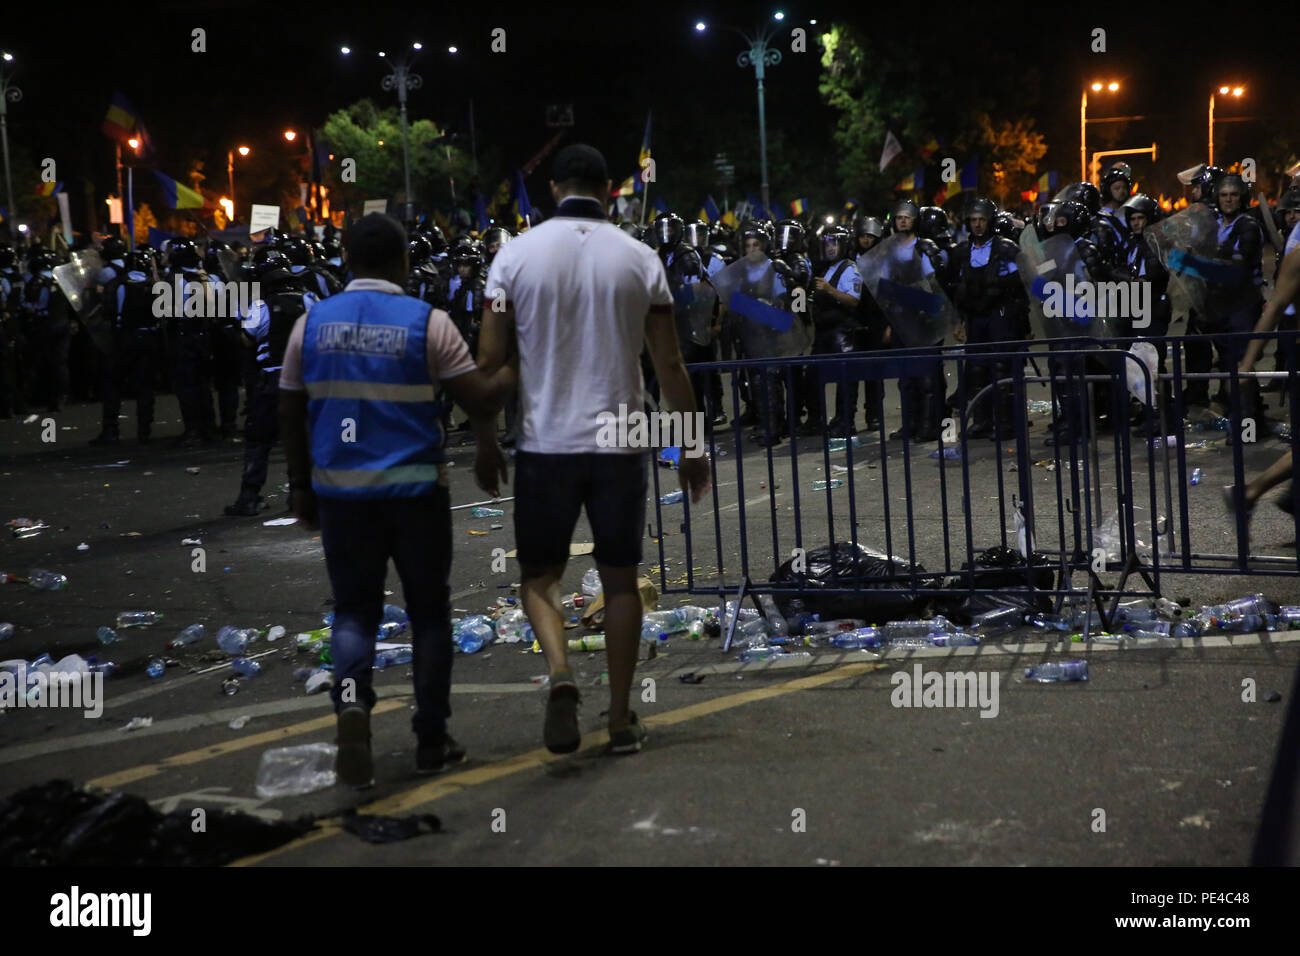 Bucharest, Romania - August 10, 2018: A gendarme is arresting a football supporter during  the violent anti-government protest in Bucharest. - Stock Image